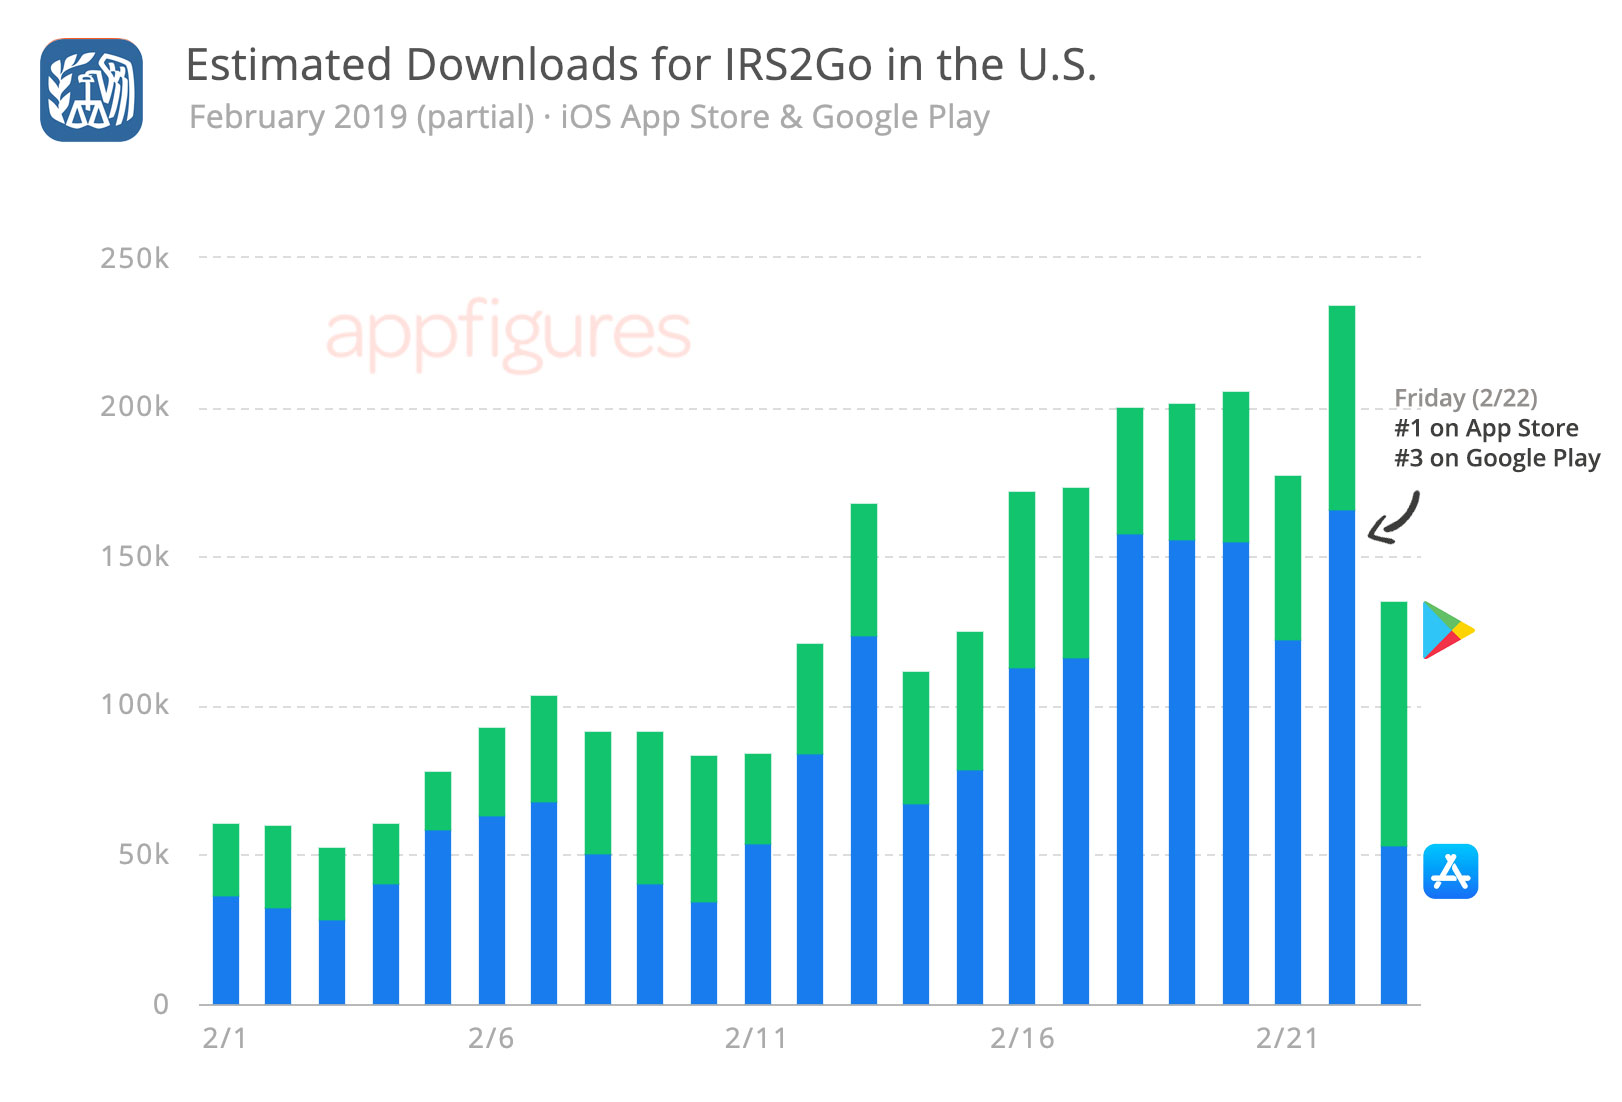 IRS2Go Downloads Estimates on the iOS App Store and Google Play by Appfigures